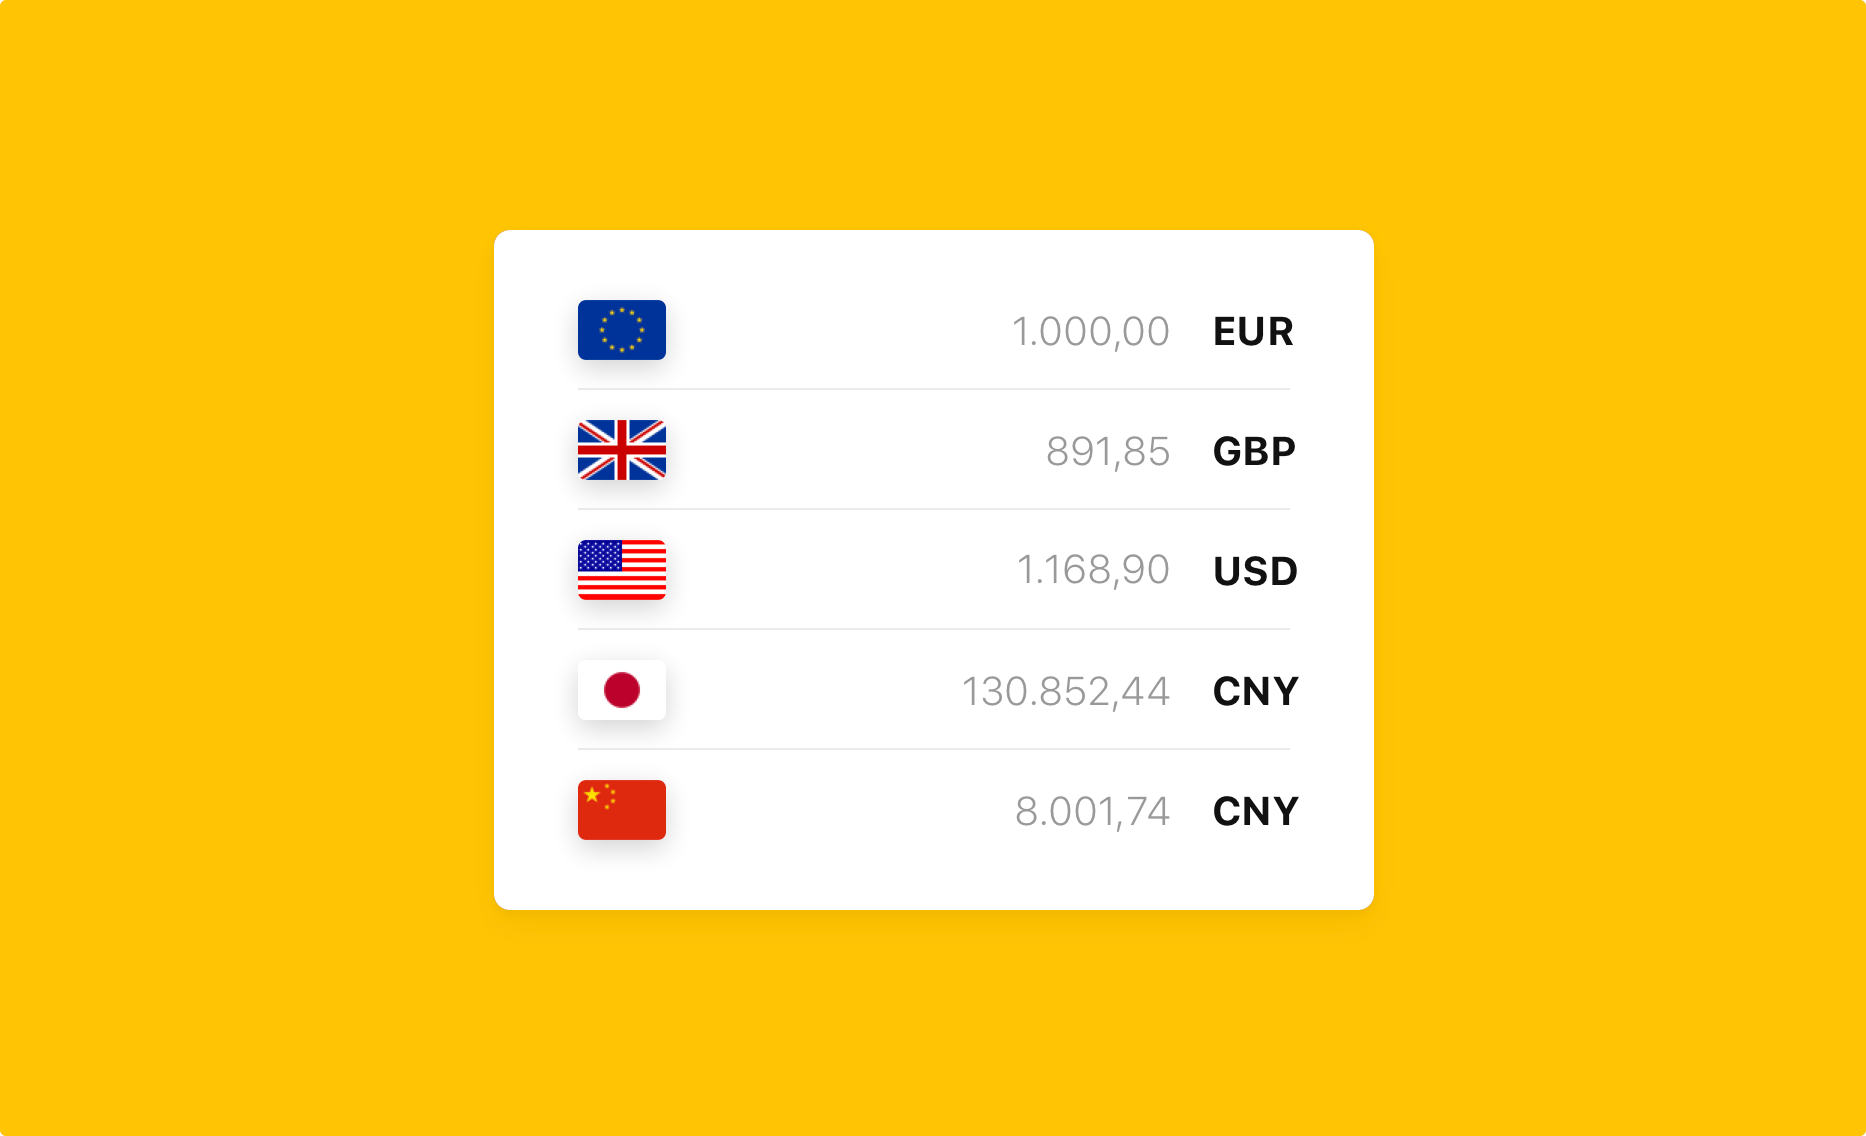 An overview of currencies you can convert with the currency converter package.